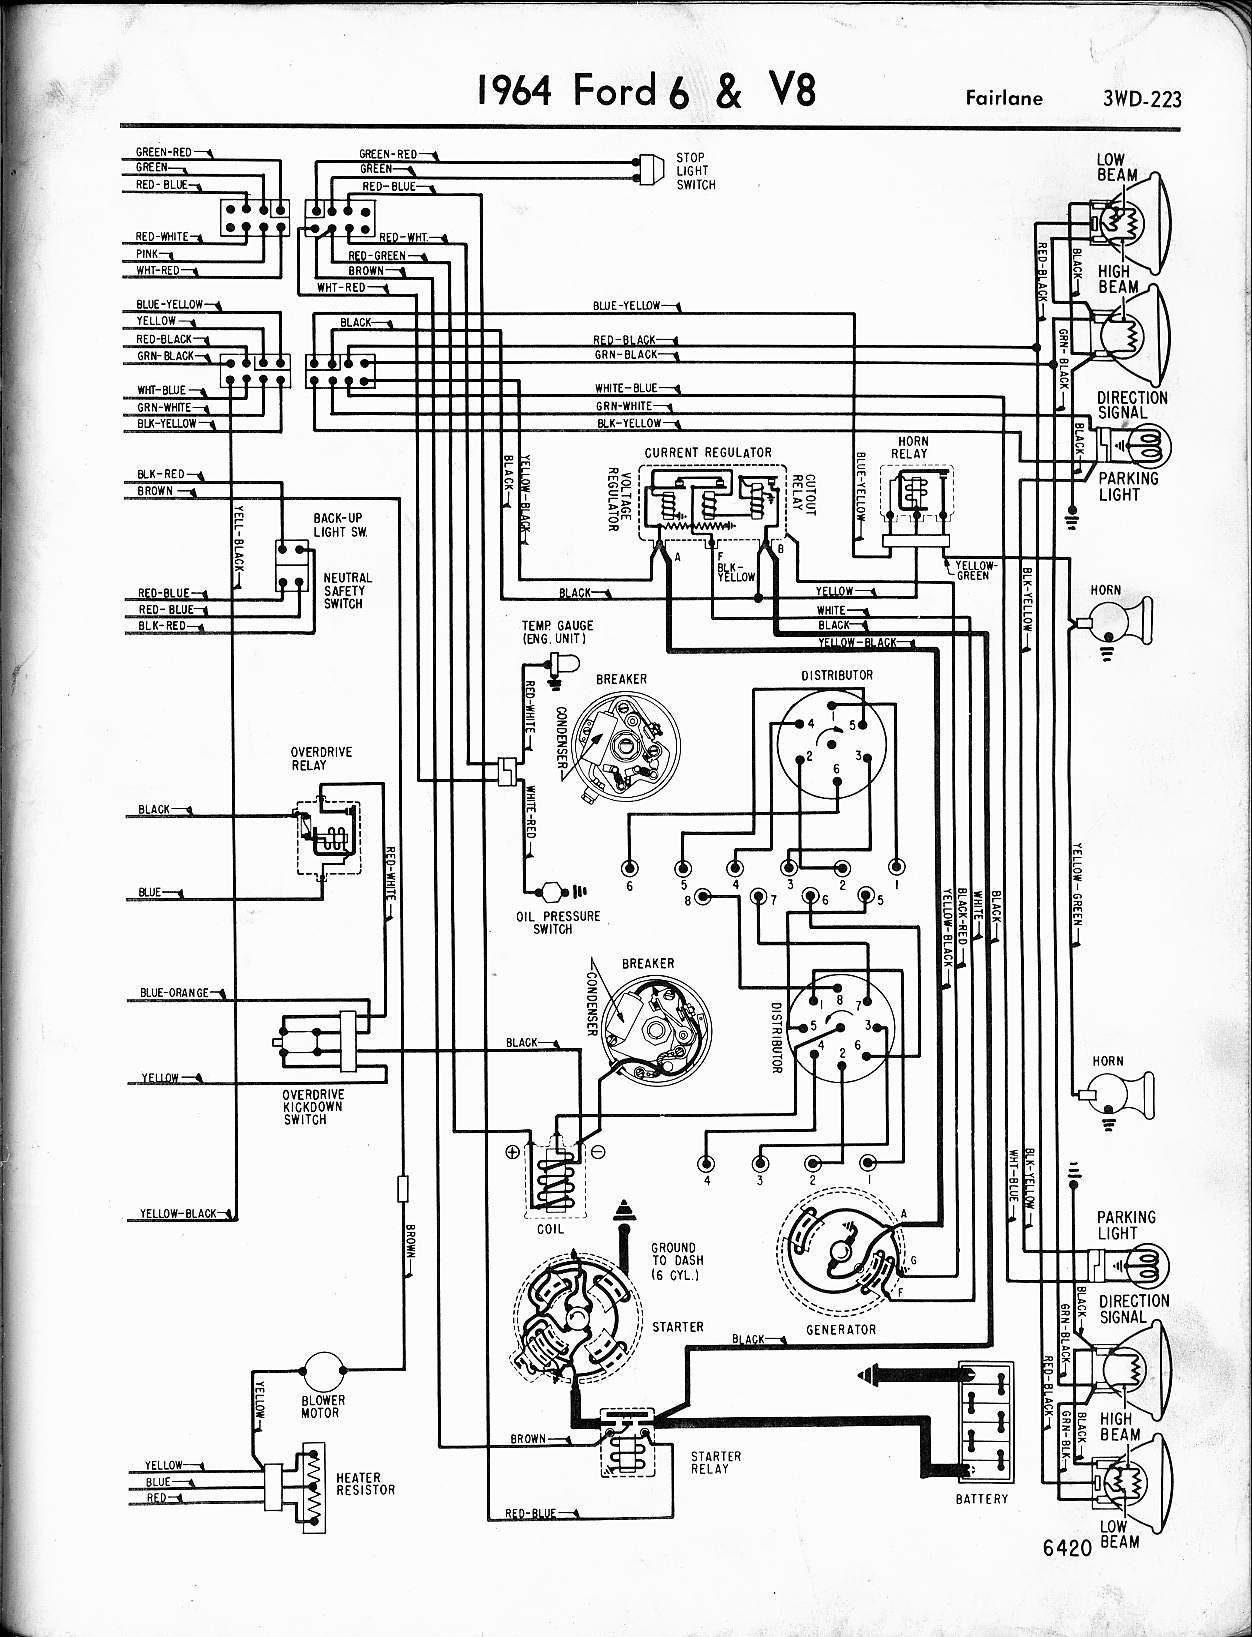 56 Ford Fairlane Wiring Diagram, 56, Get Free Image About